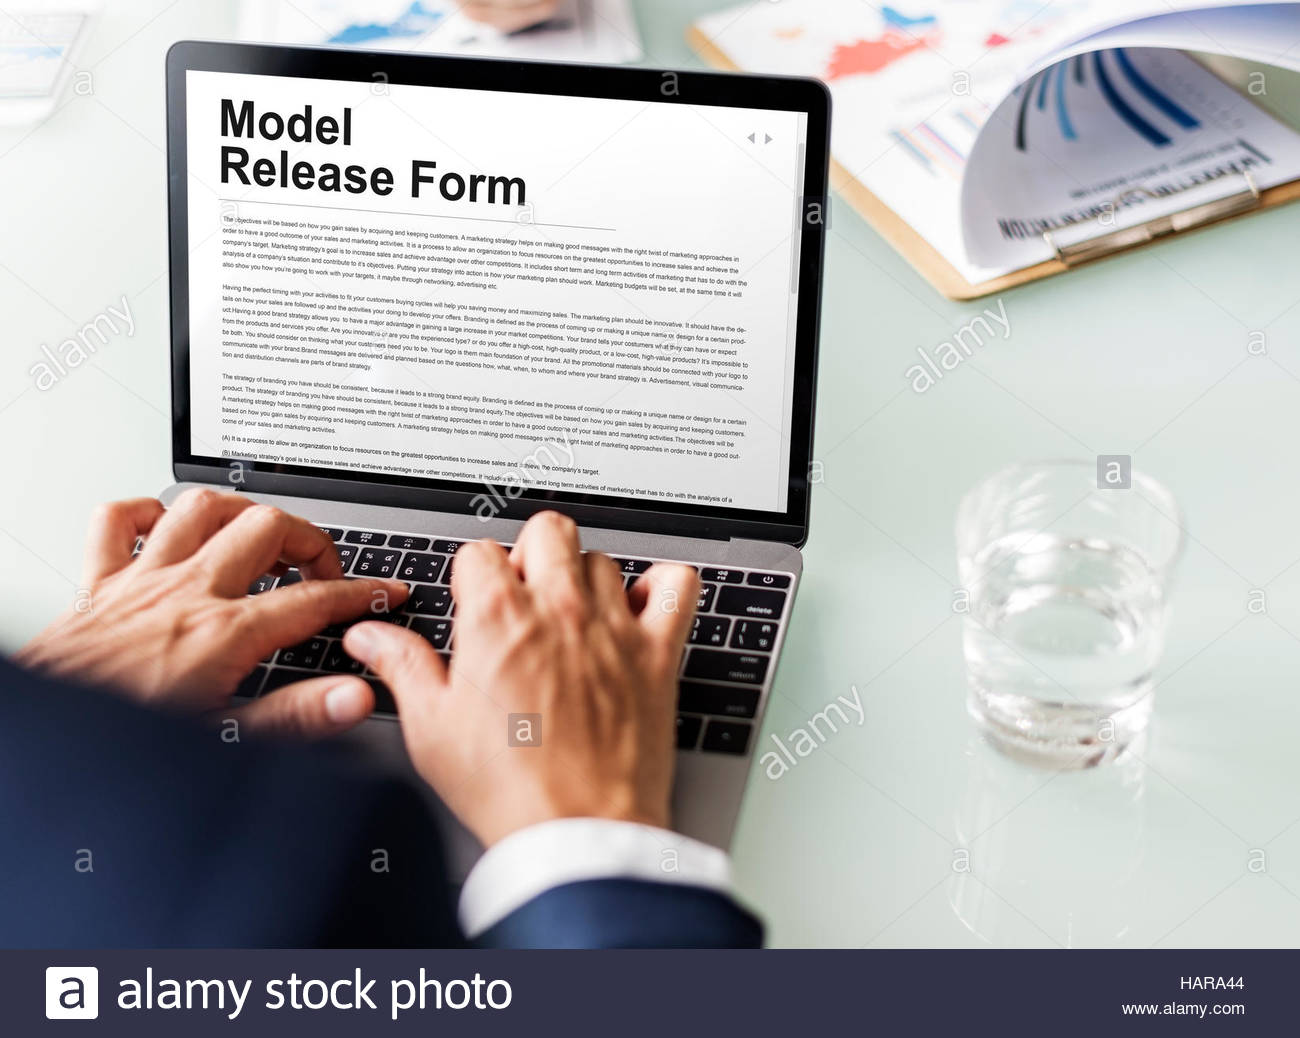 Stock Photo Model Release Form